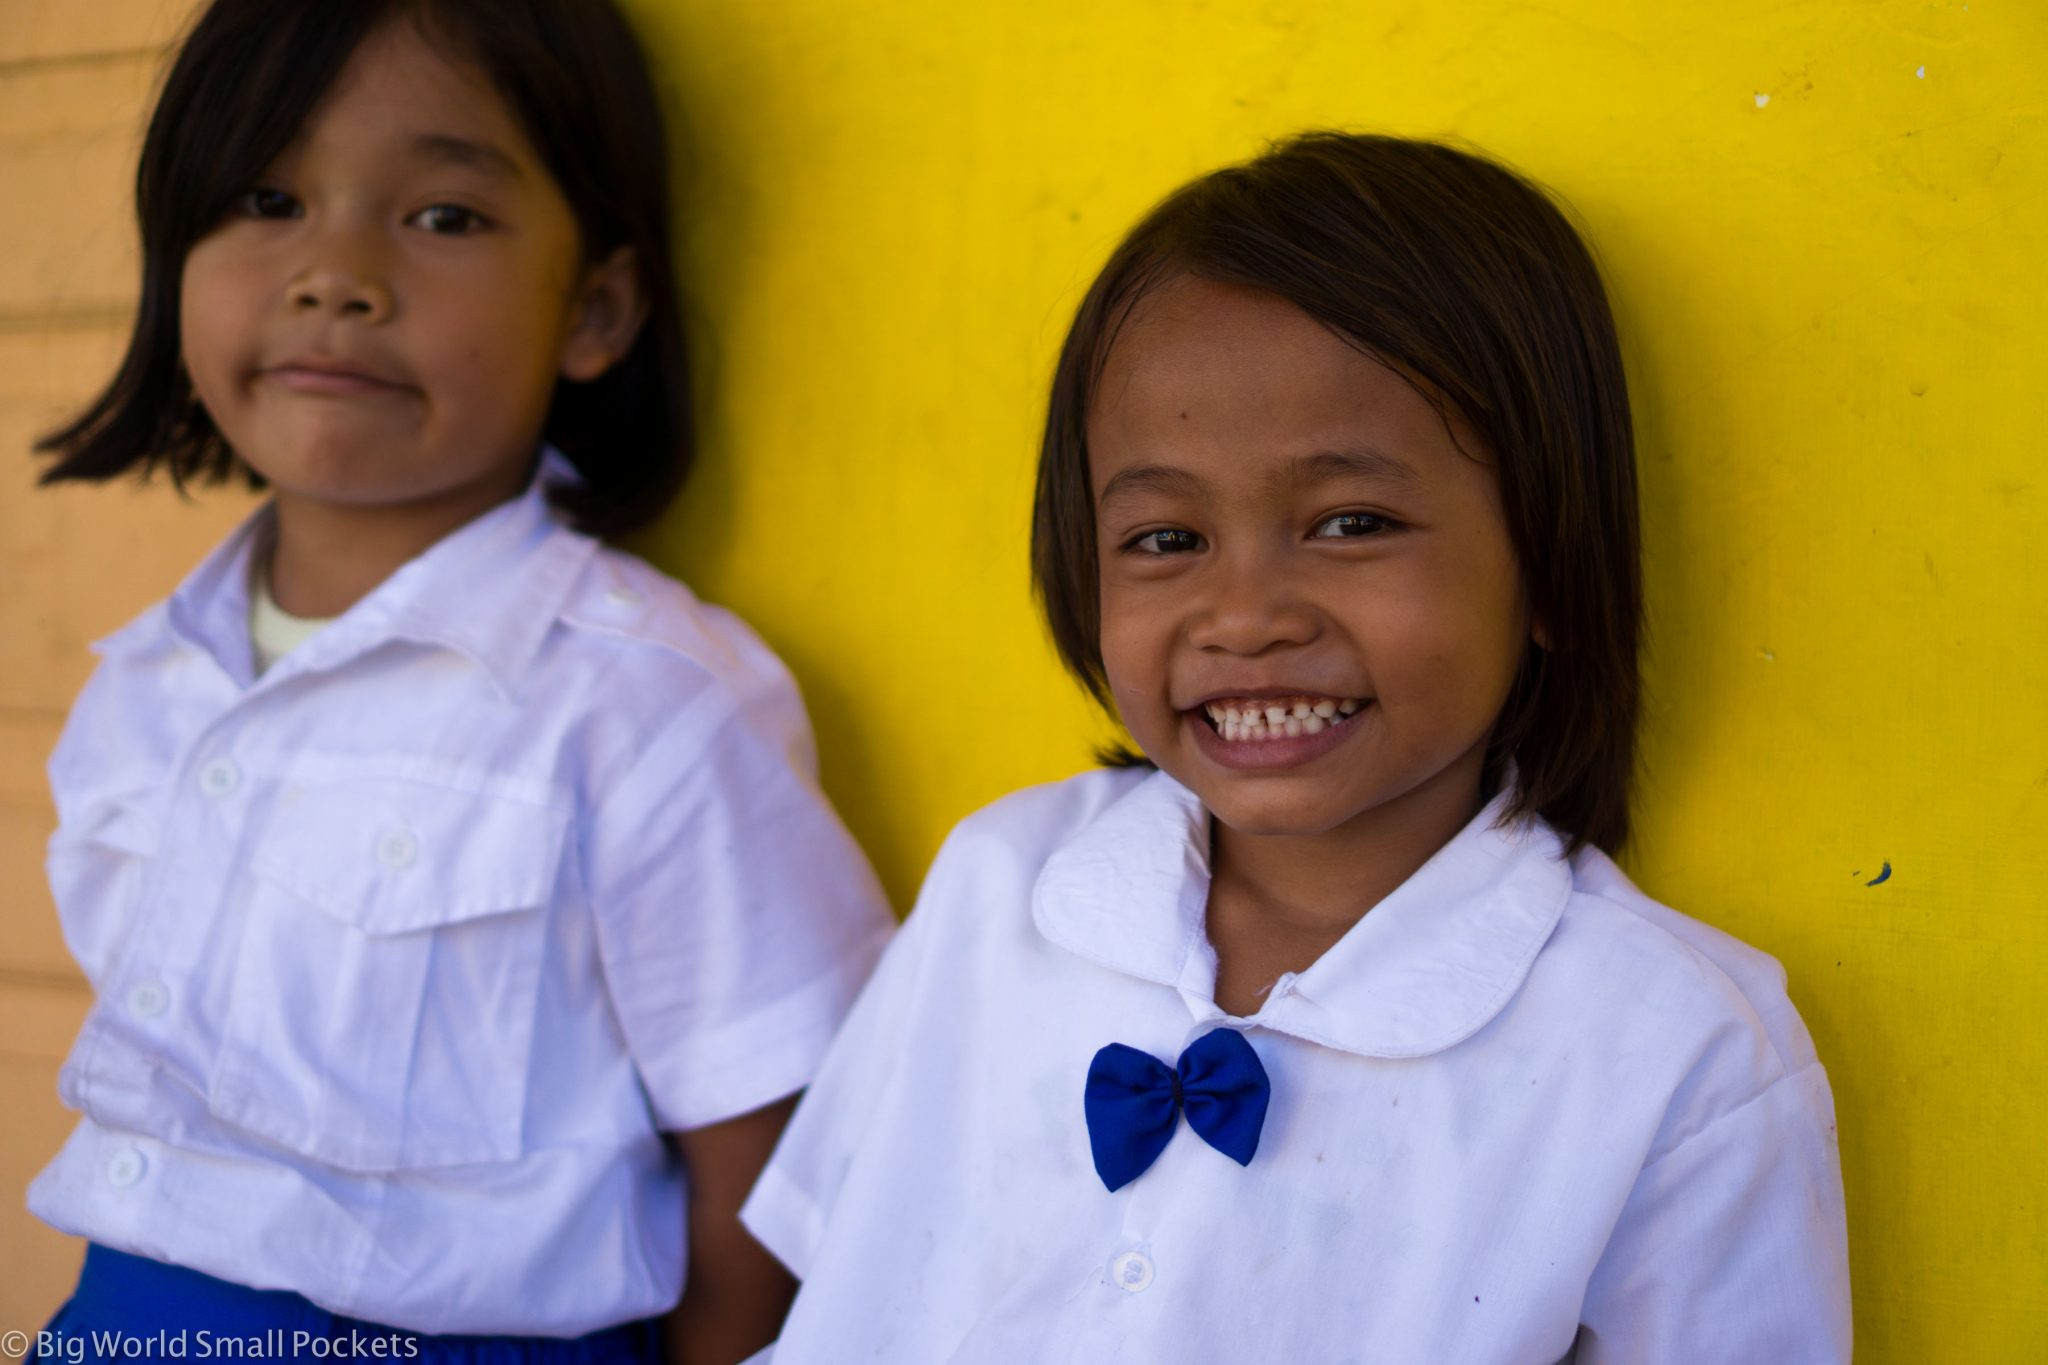 Indonesia, Lake Toba, Girls at School